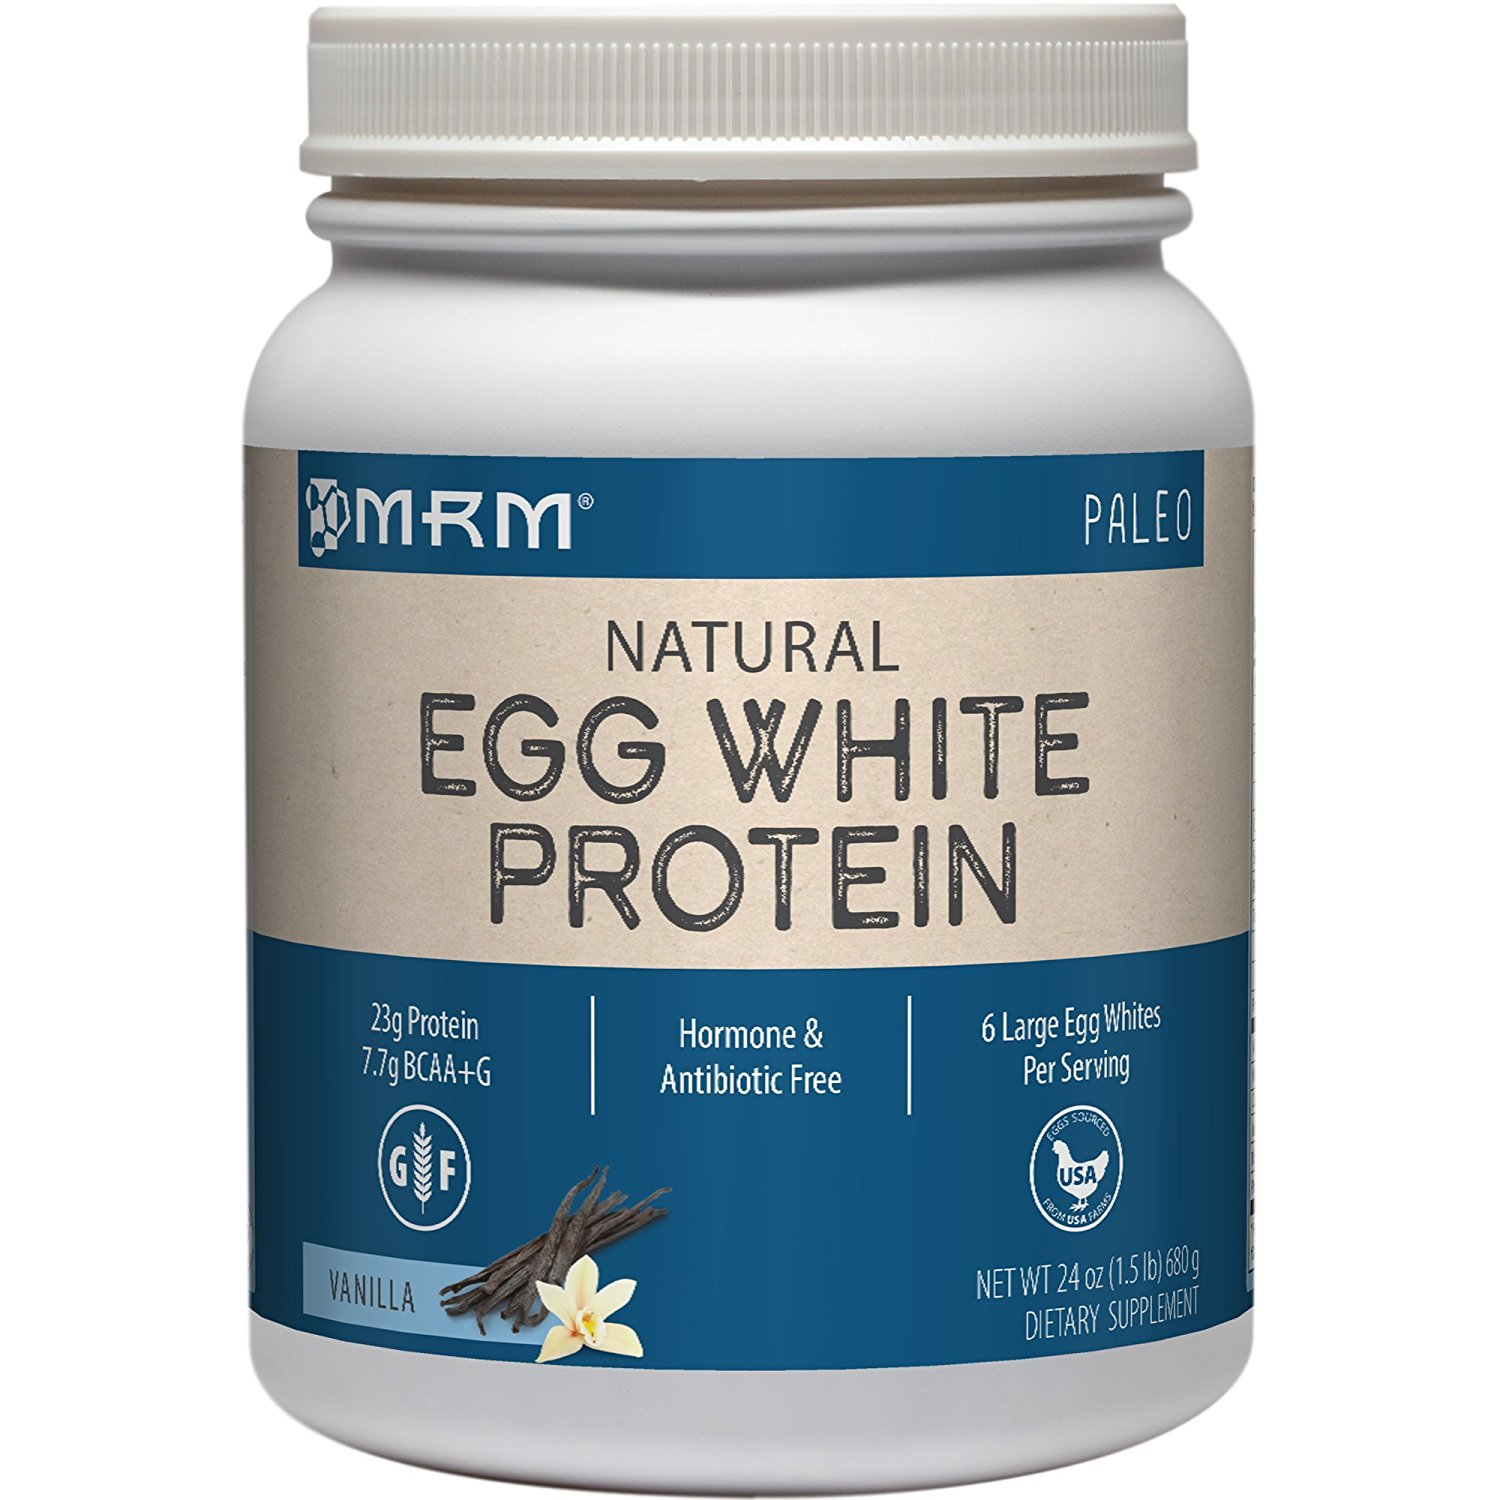 PROTEIN ALTERNATIVE FOR PEOPLE WITH LACTOSE INTOLERANCE: One unique use of egg white protein is that it is lactose free. Many individuals with lactose issues are not able to tolerate a whey protein powder.